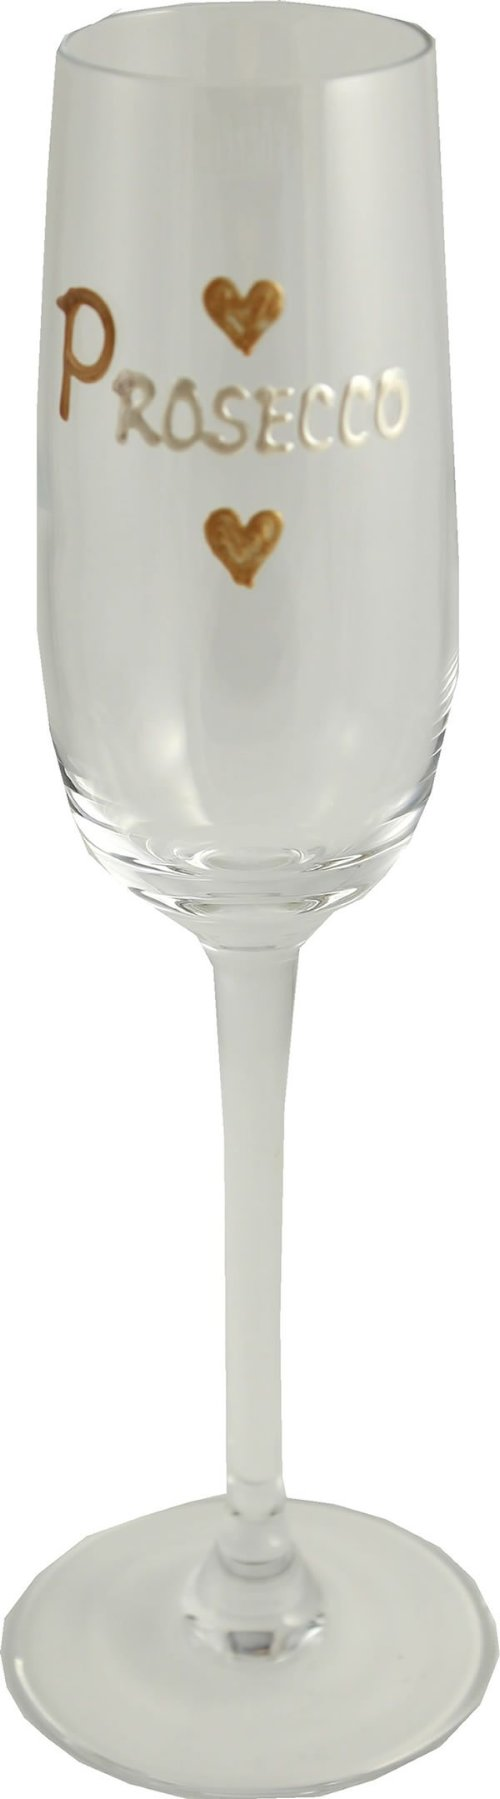 Love Prosecco Gift Champagne Glass: (gold heart)